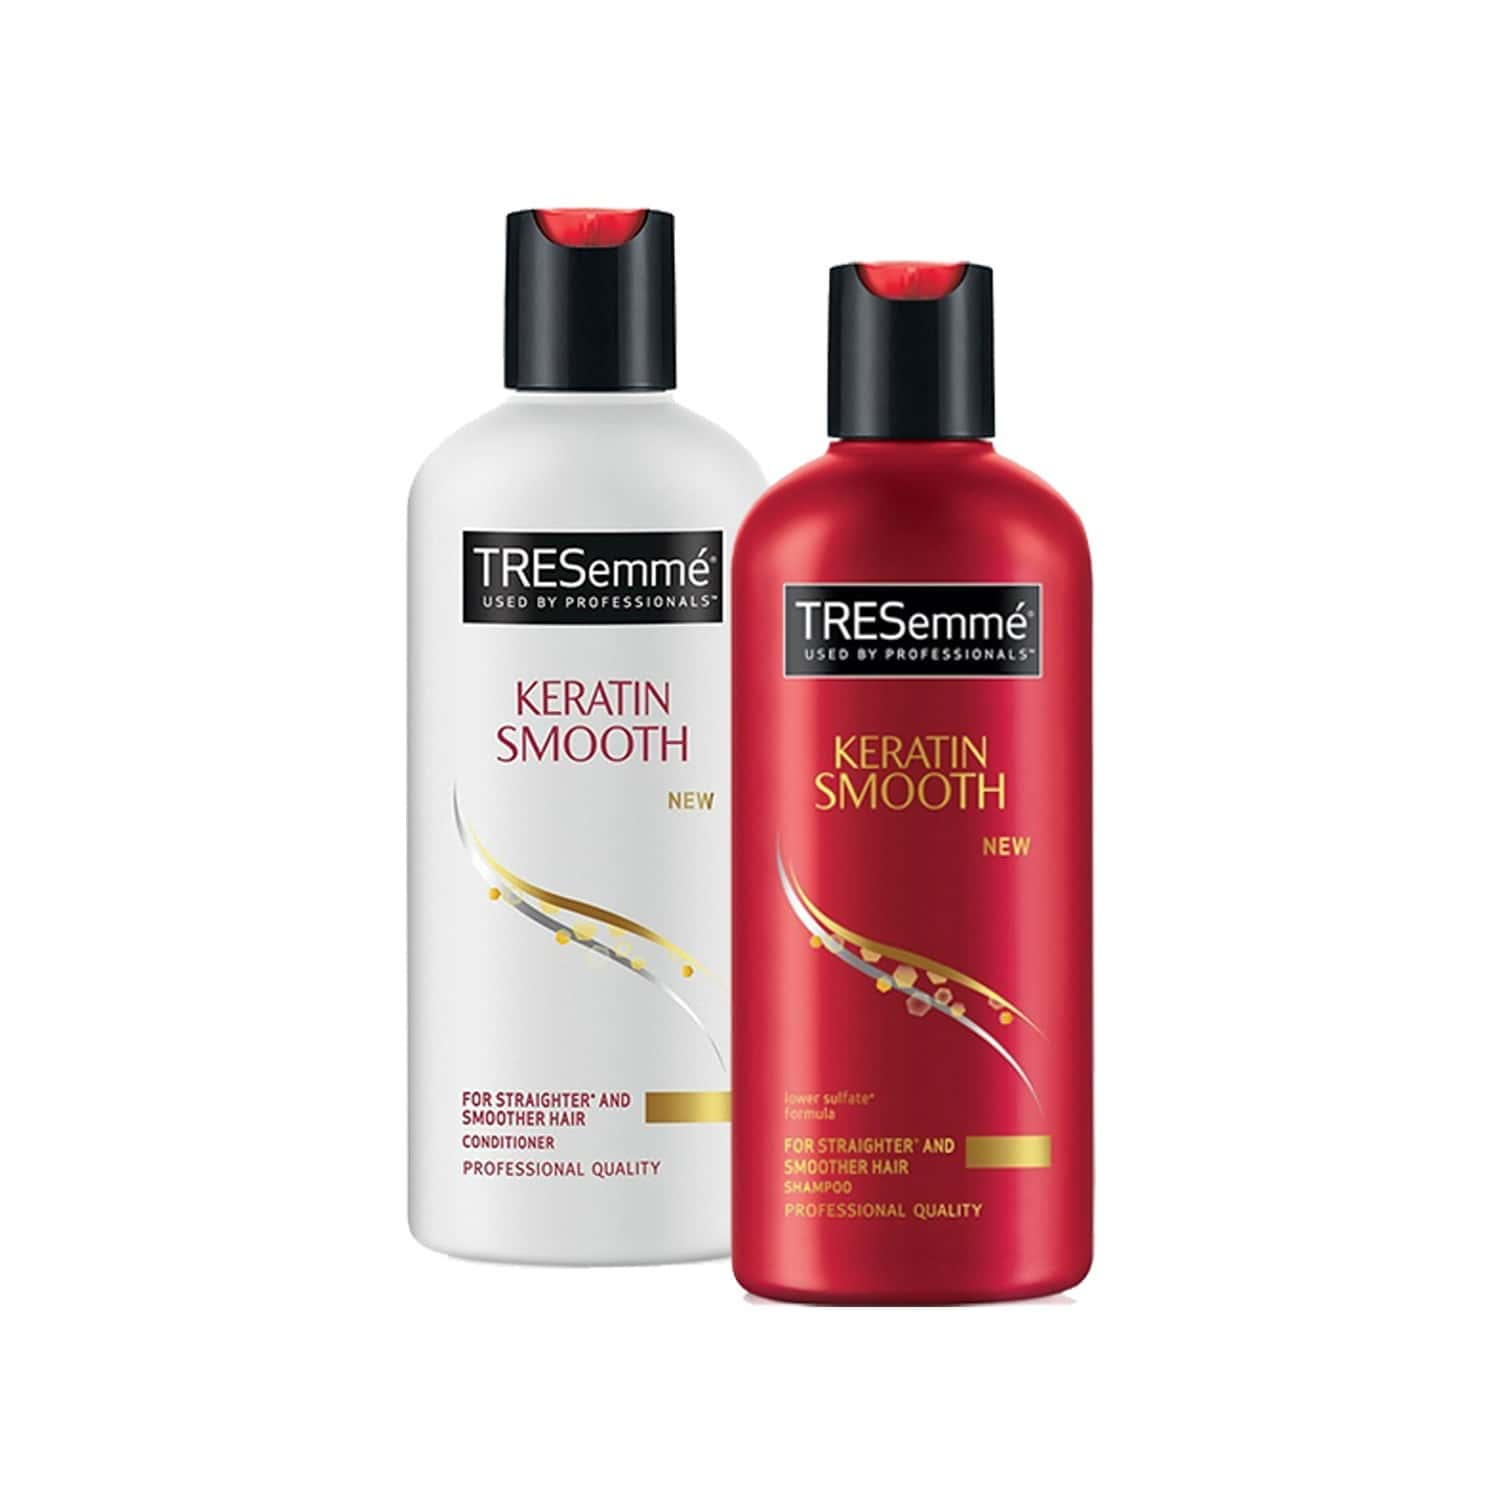 Tresemme Keratin Smooth Value Pack (shampoo And Conditioner)